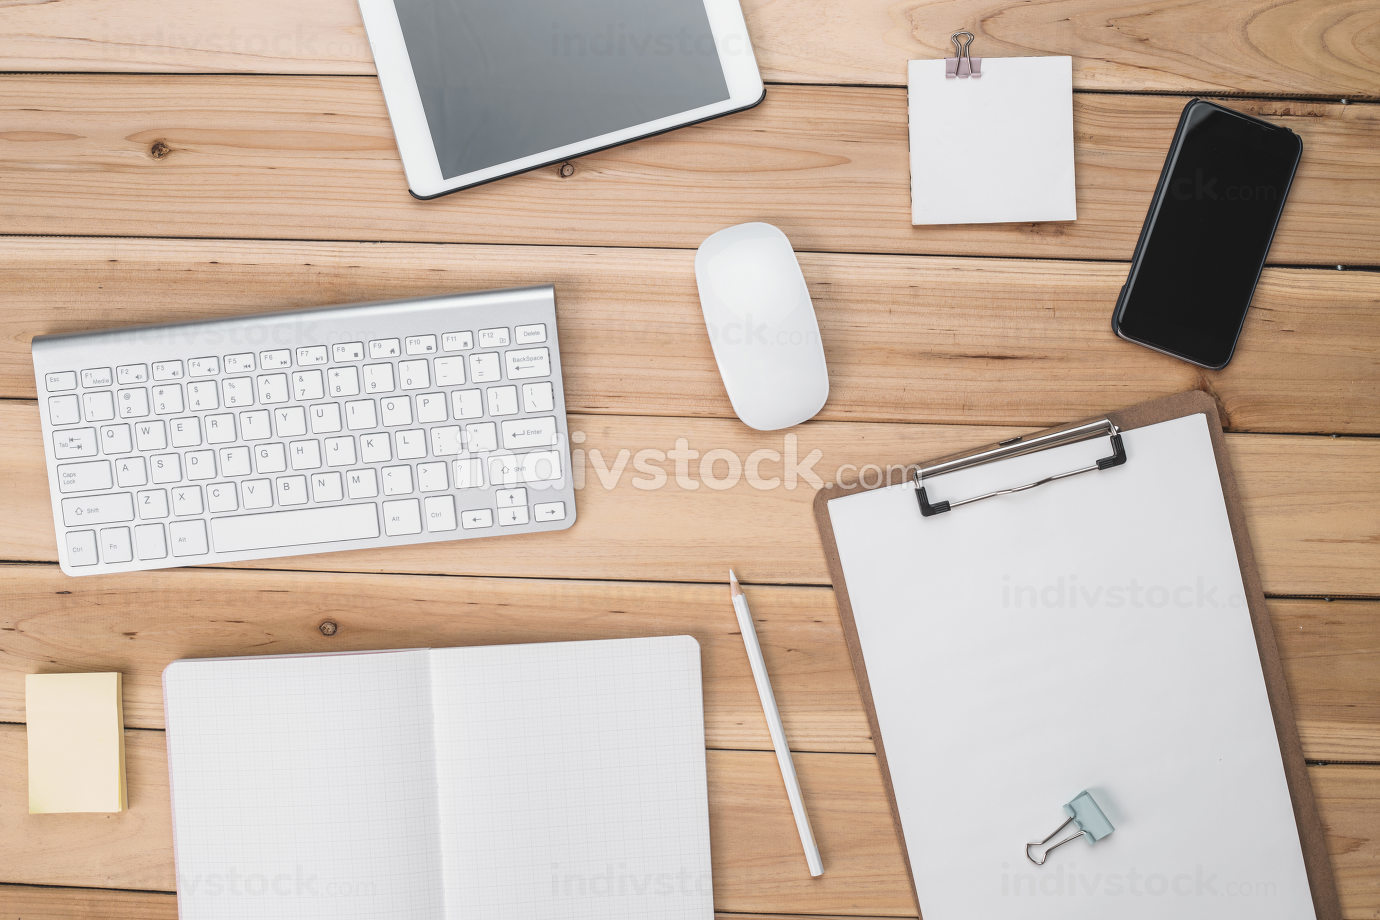 Top View of Modern Technology working Place on wooden Office Desk with large Desktop Computer Coffee Mug Keyboard and Mouse green Flower Notepad and Pen